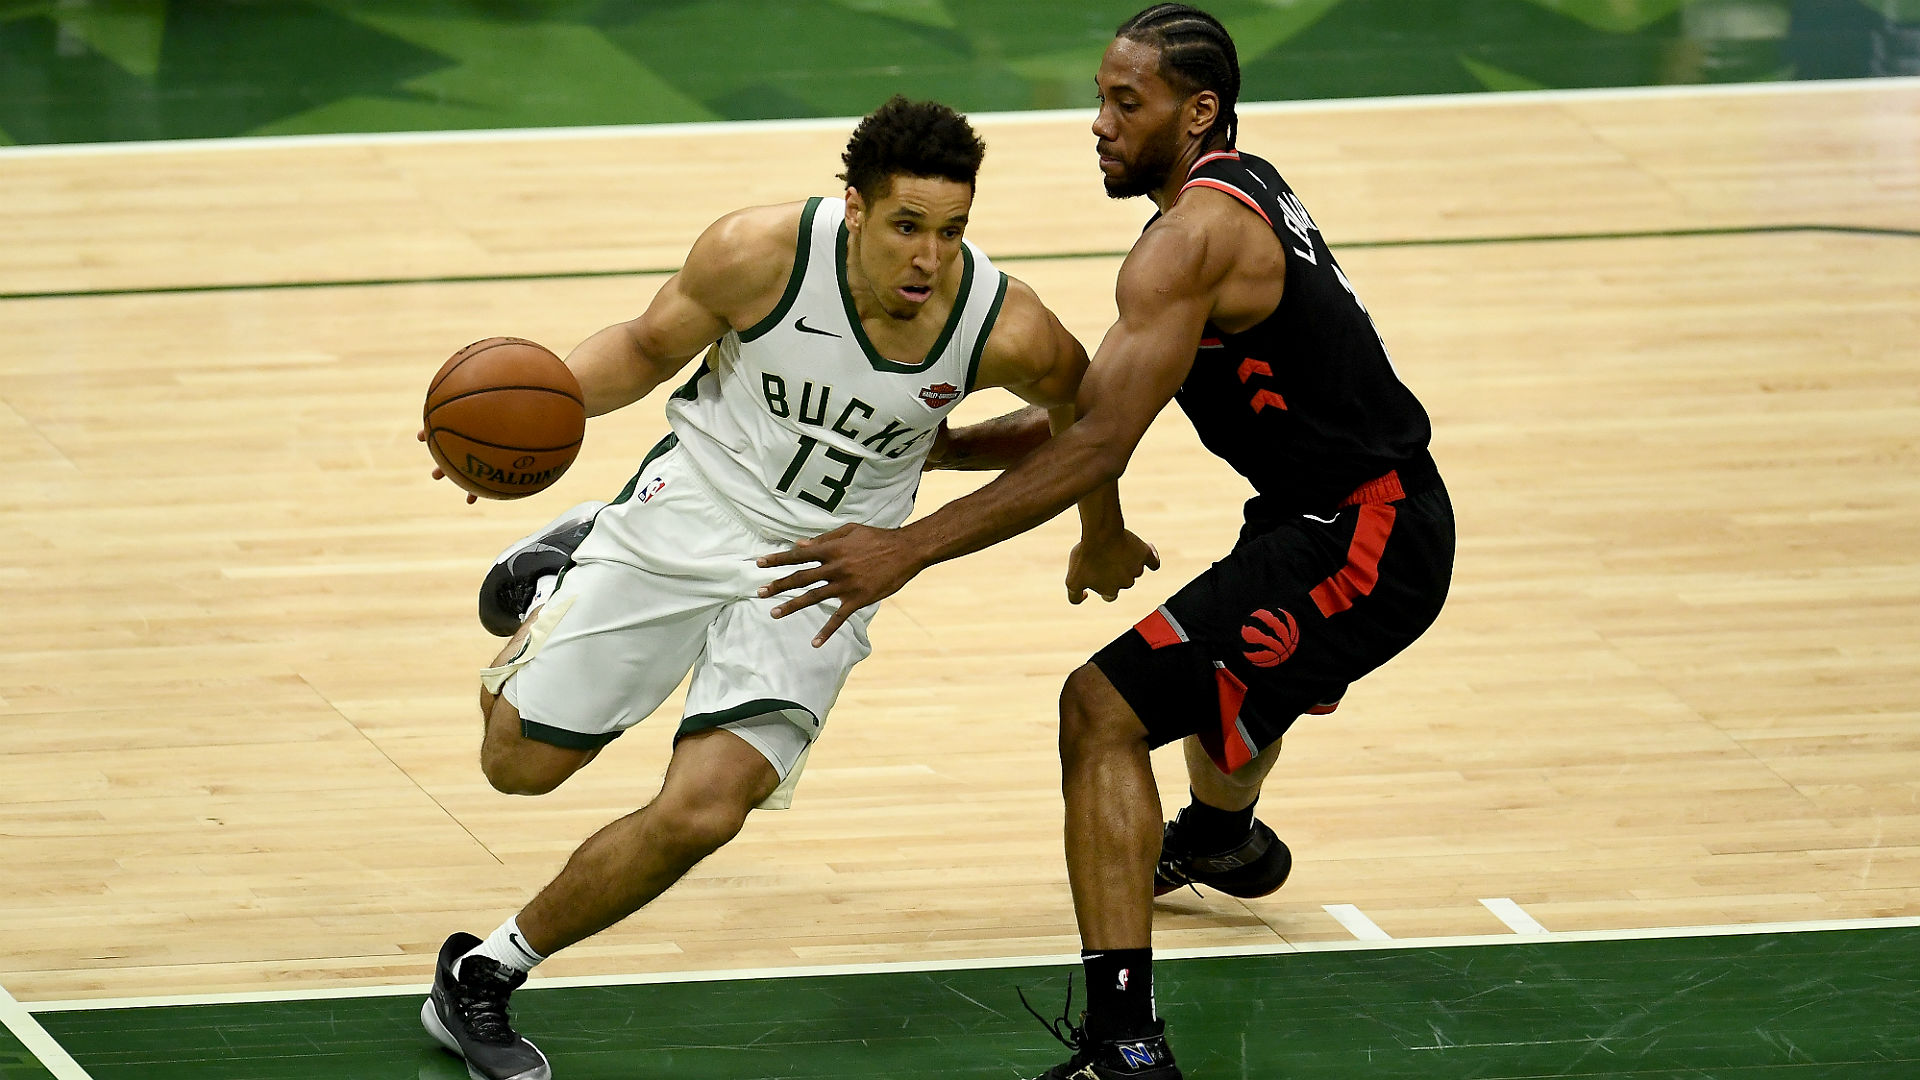 Malcolm Brogdon stepped up as the Milwaukee Bucks edged the Toronto Raptors in the NBA playoffs.